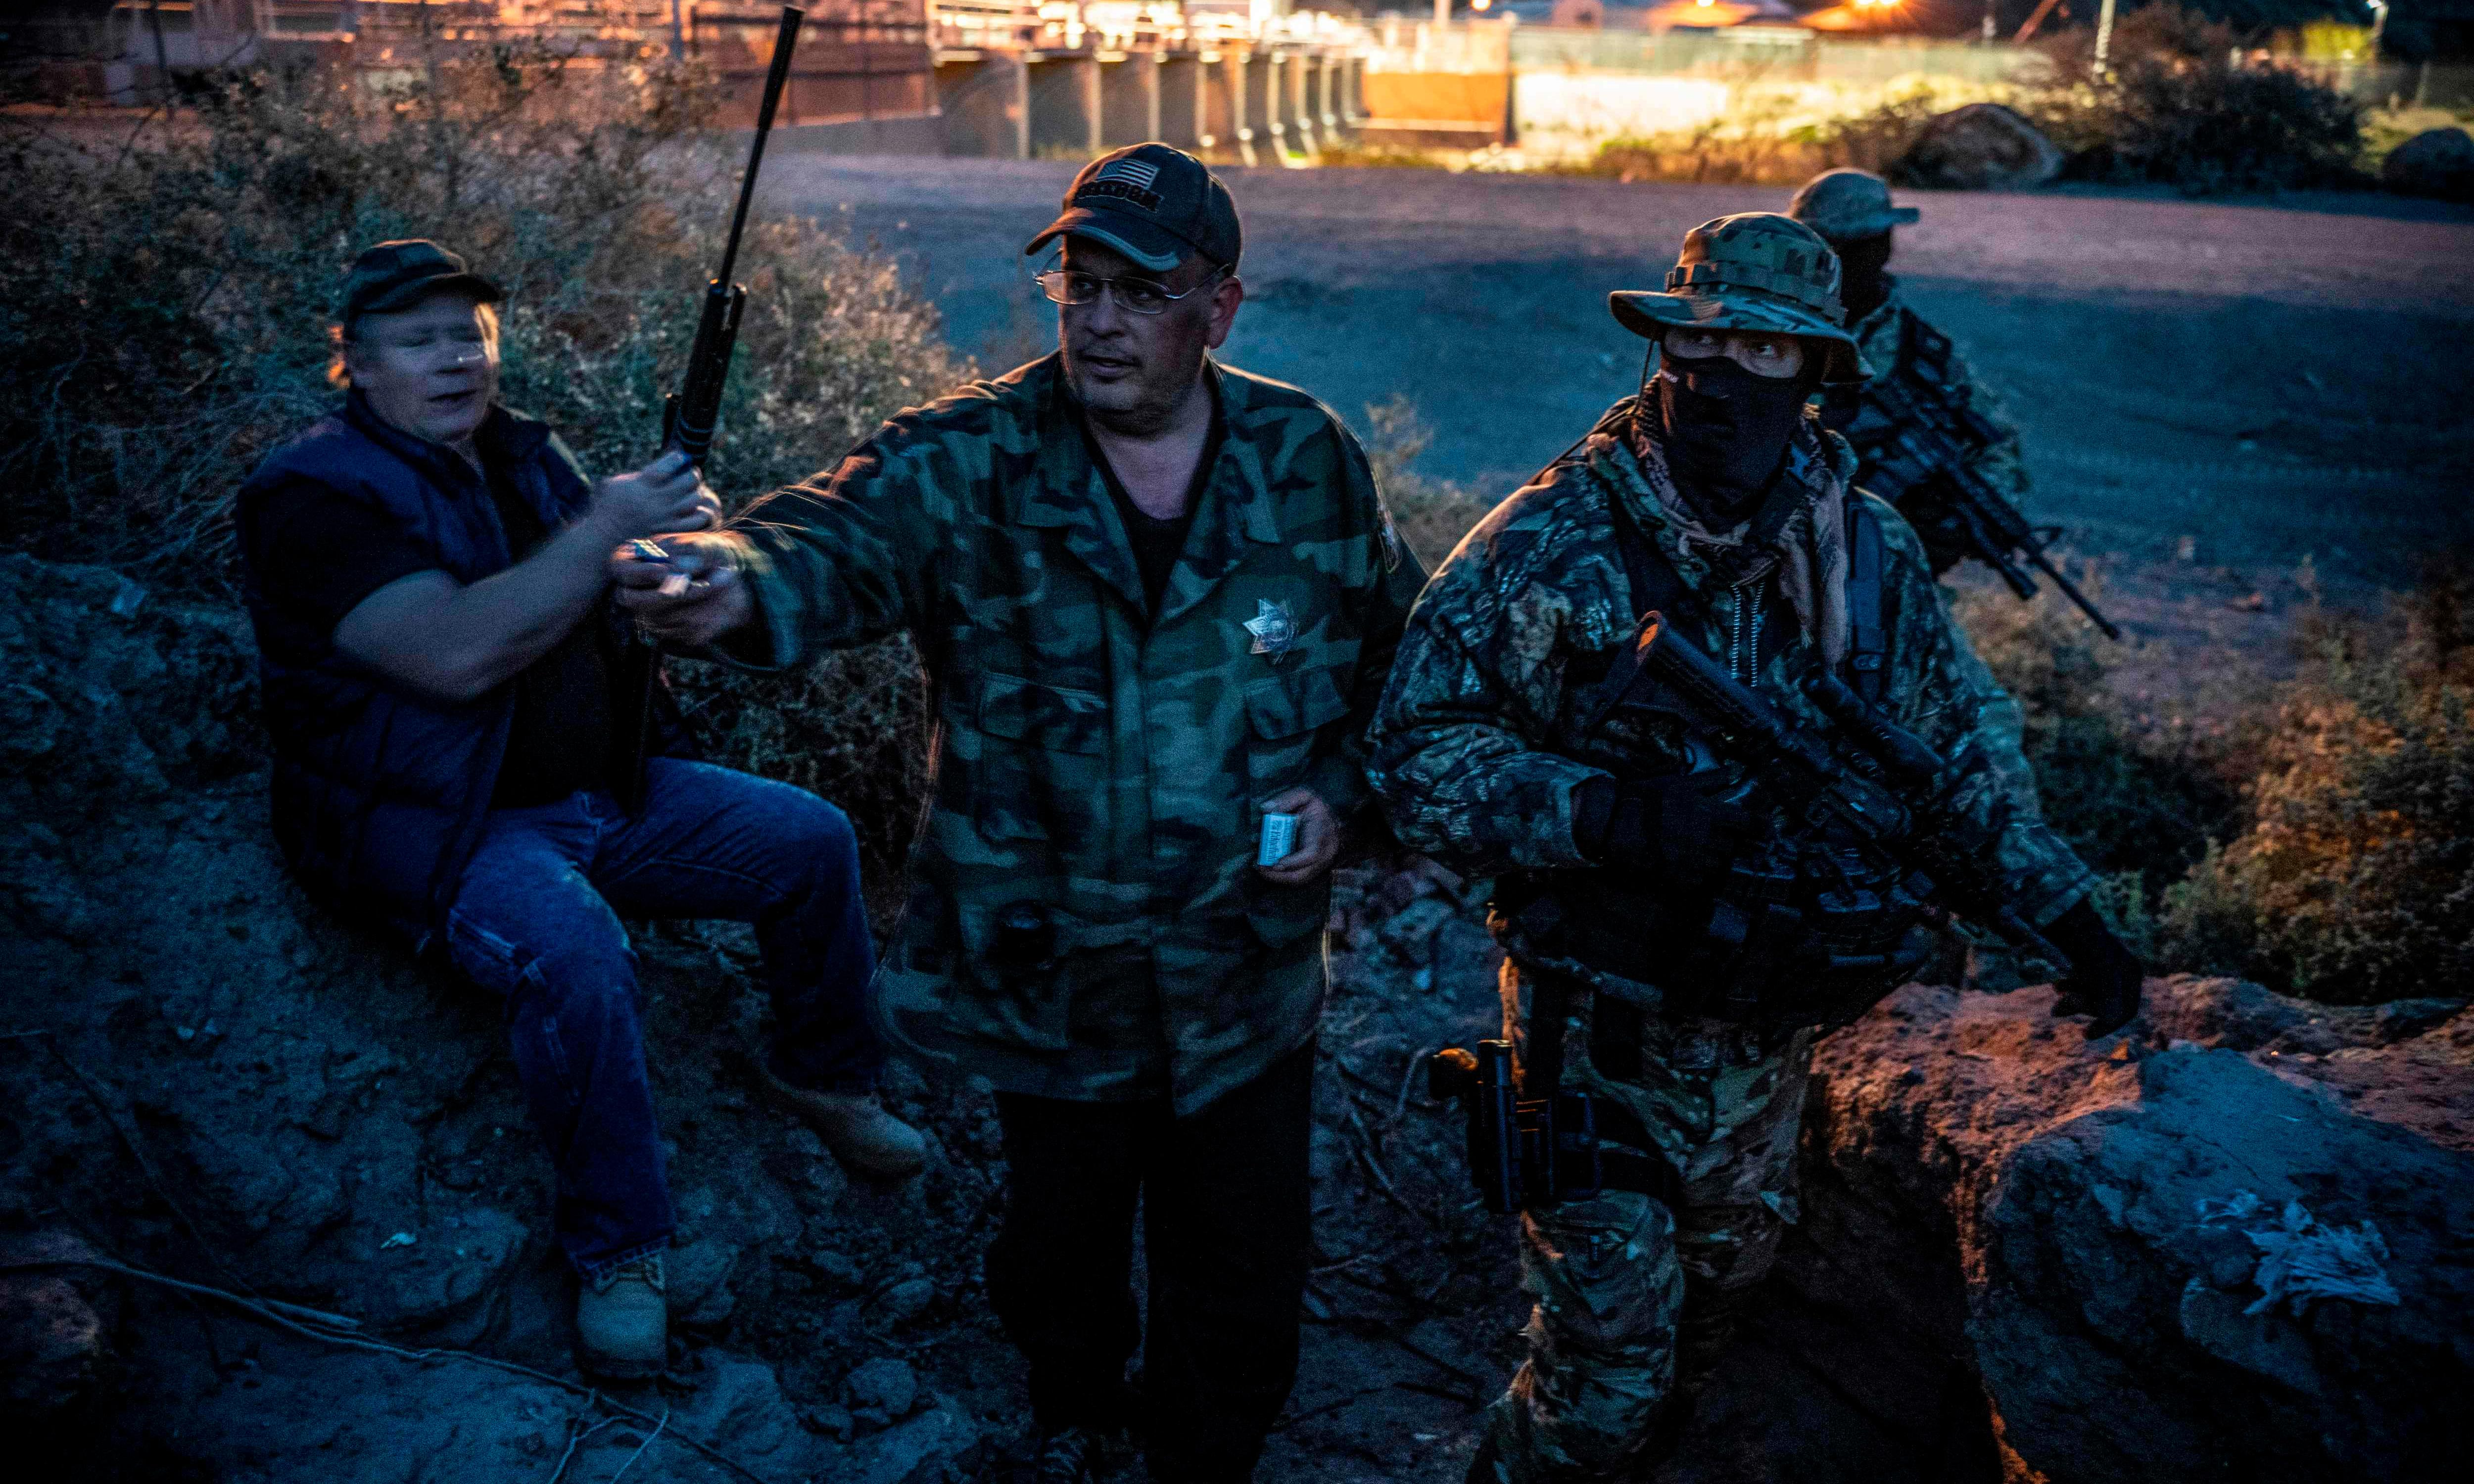 Anti-immigrant militia member charged with impersonating US border patrol